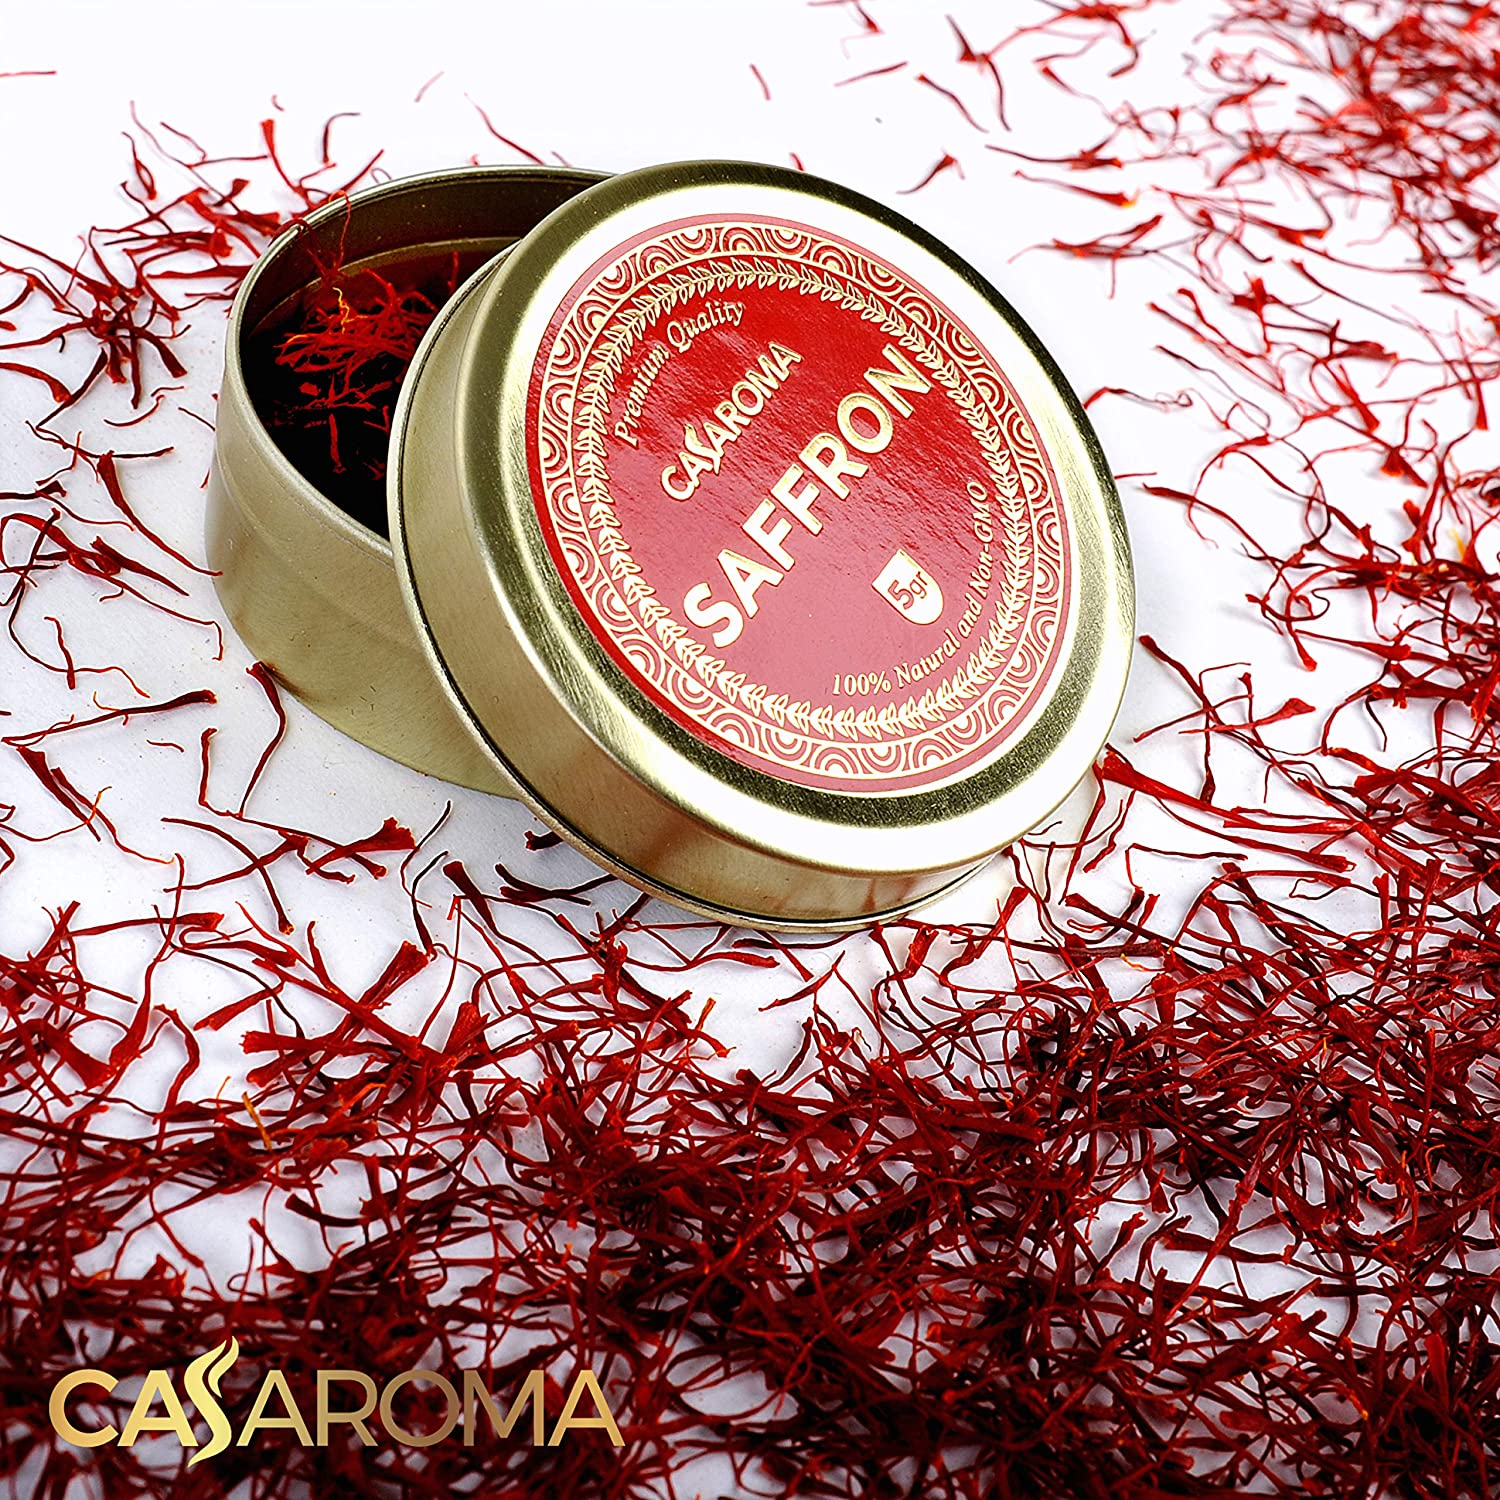 CASAROMA 5gr All Red Saffron Threads, Pure Spice for Persian Rice, Paella, Organic Tea and Desserts, Natural Harvested and Spanish Grown, Non-GMO